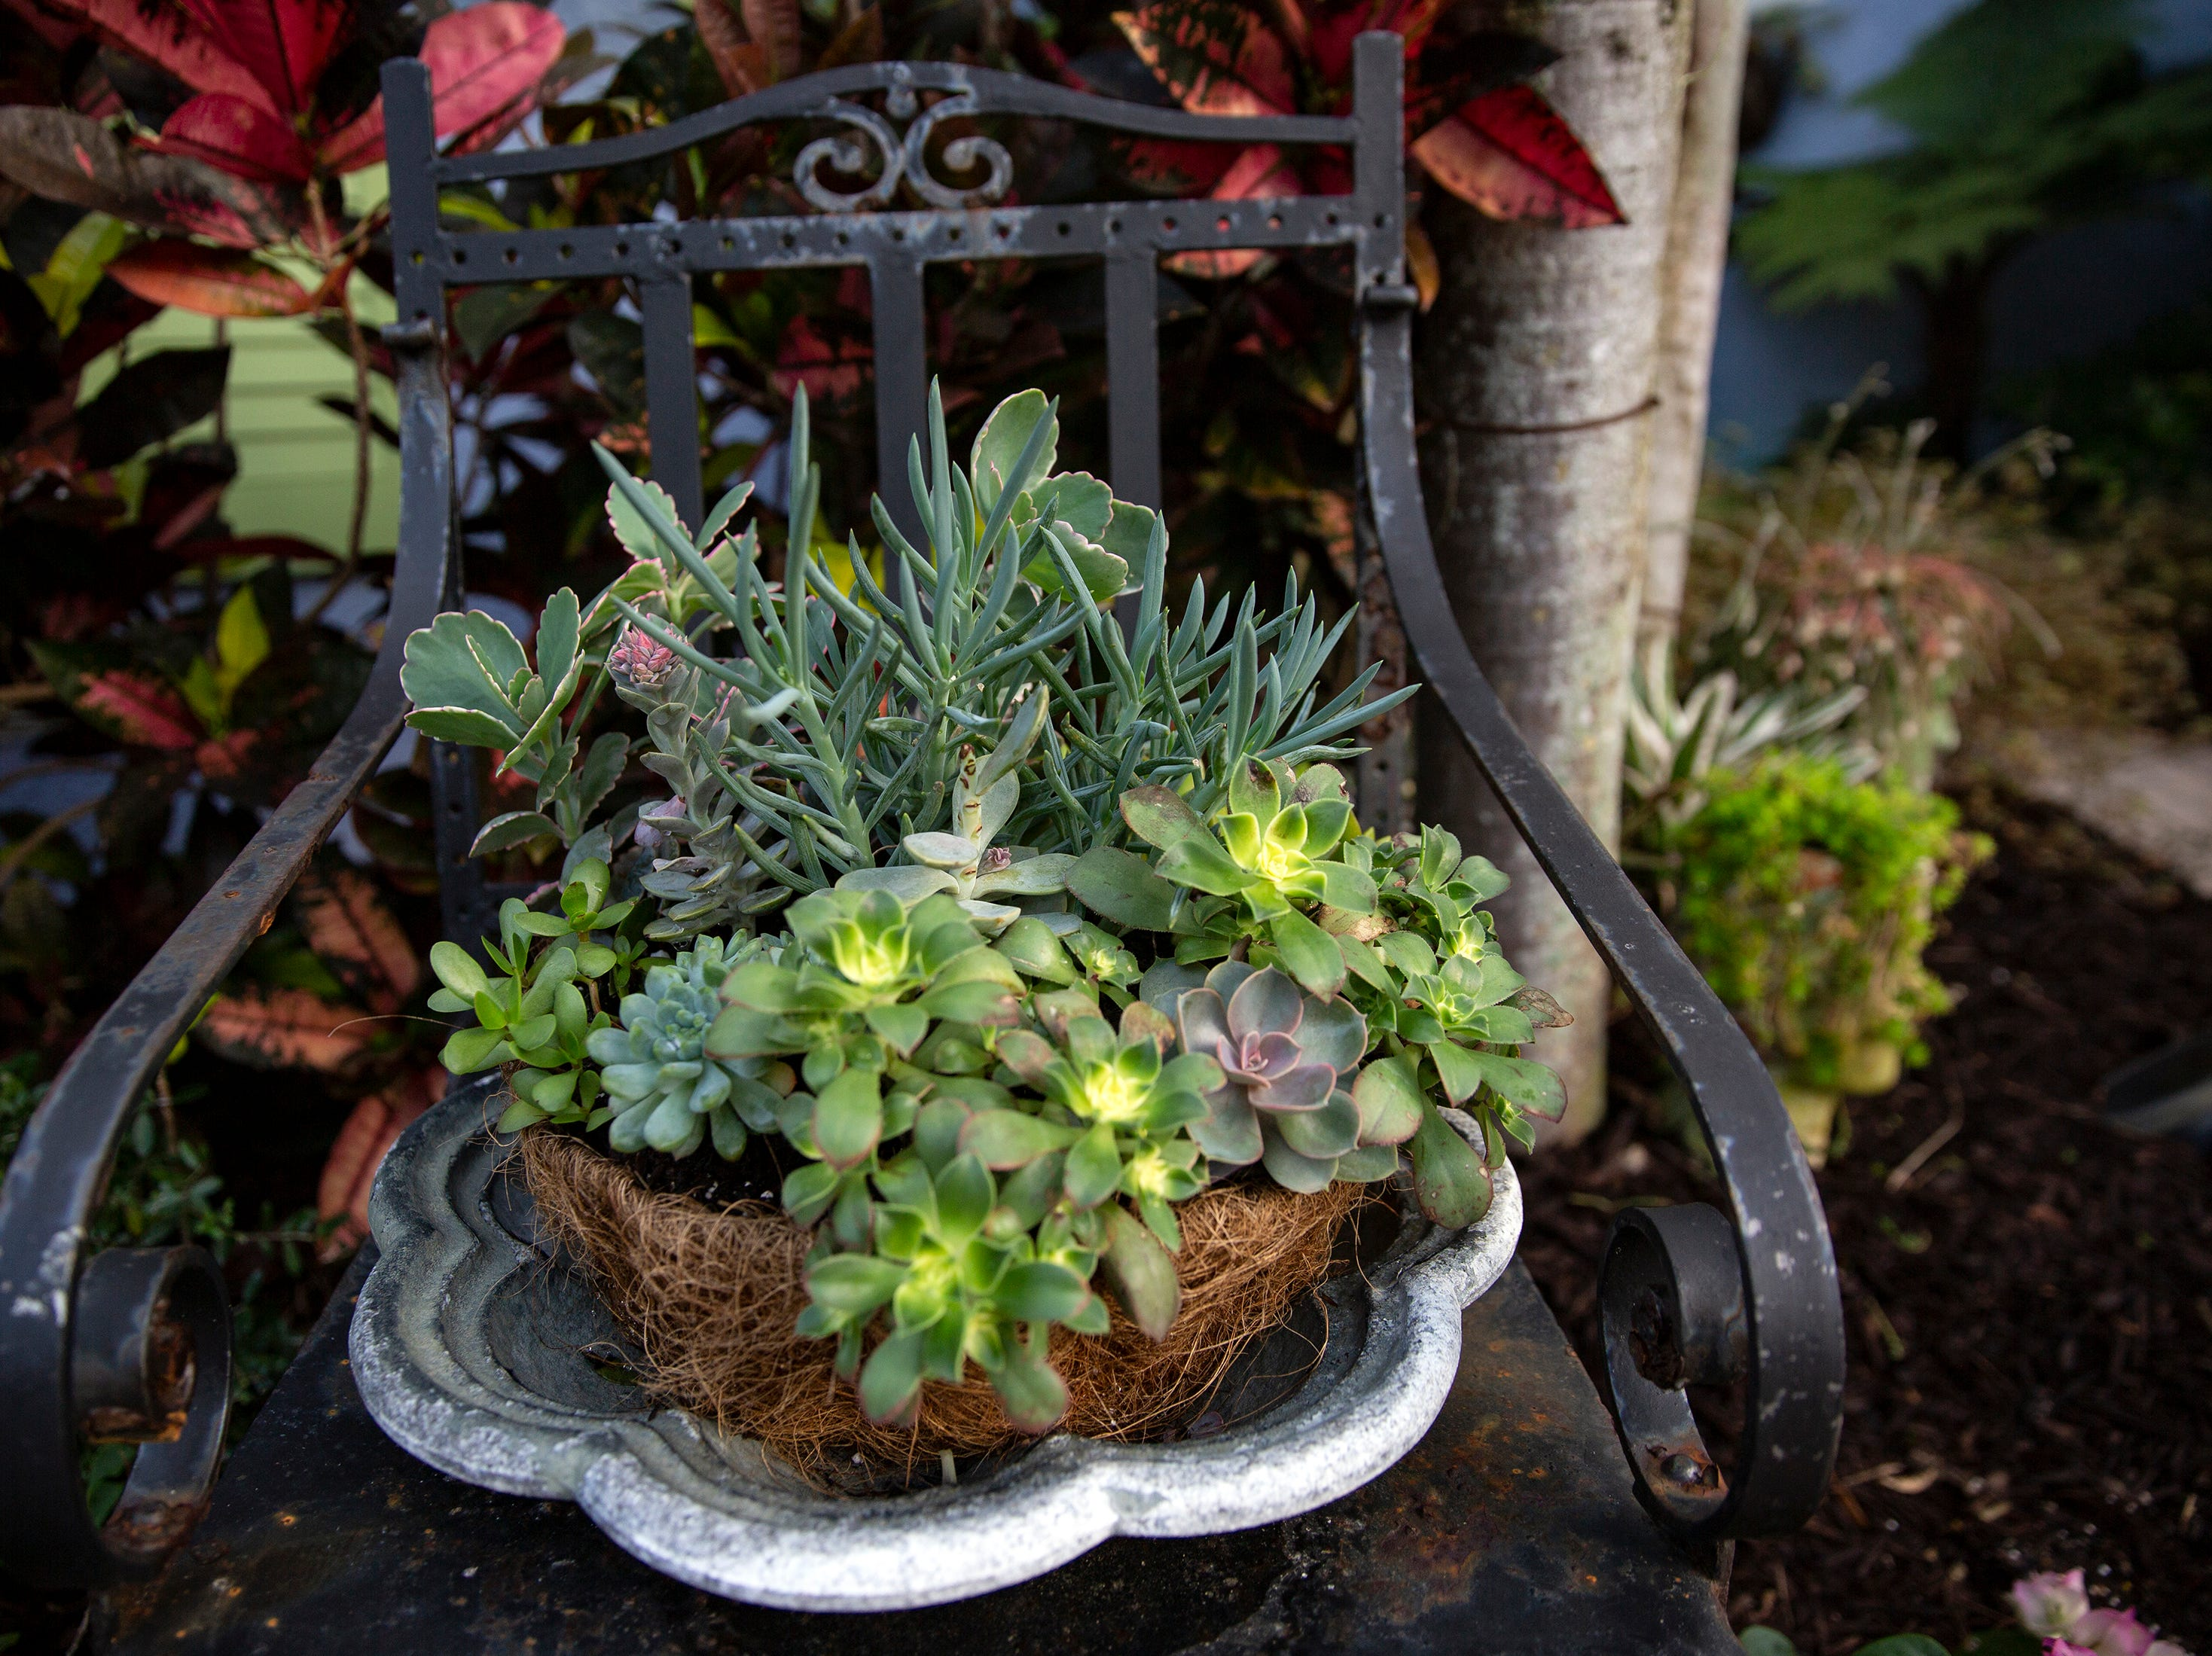 A Succulents display which is featured in the Naples House and Garden Tour is pictured, Thursday, Jan. 24, 2019, in Naples.